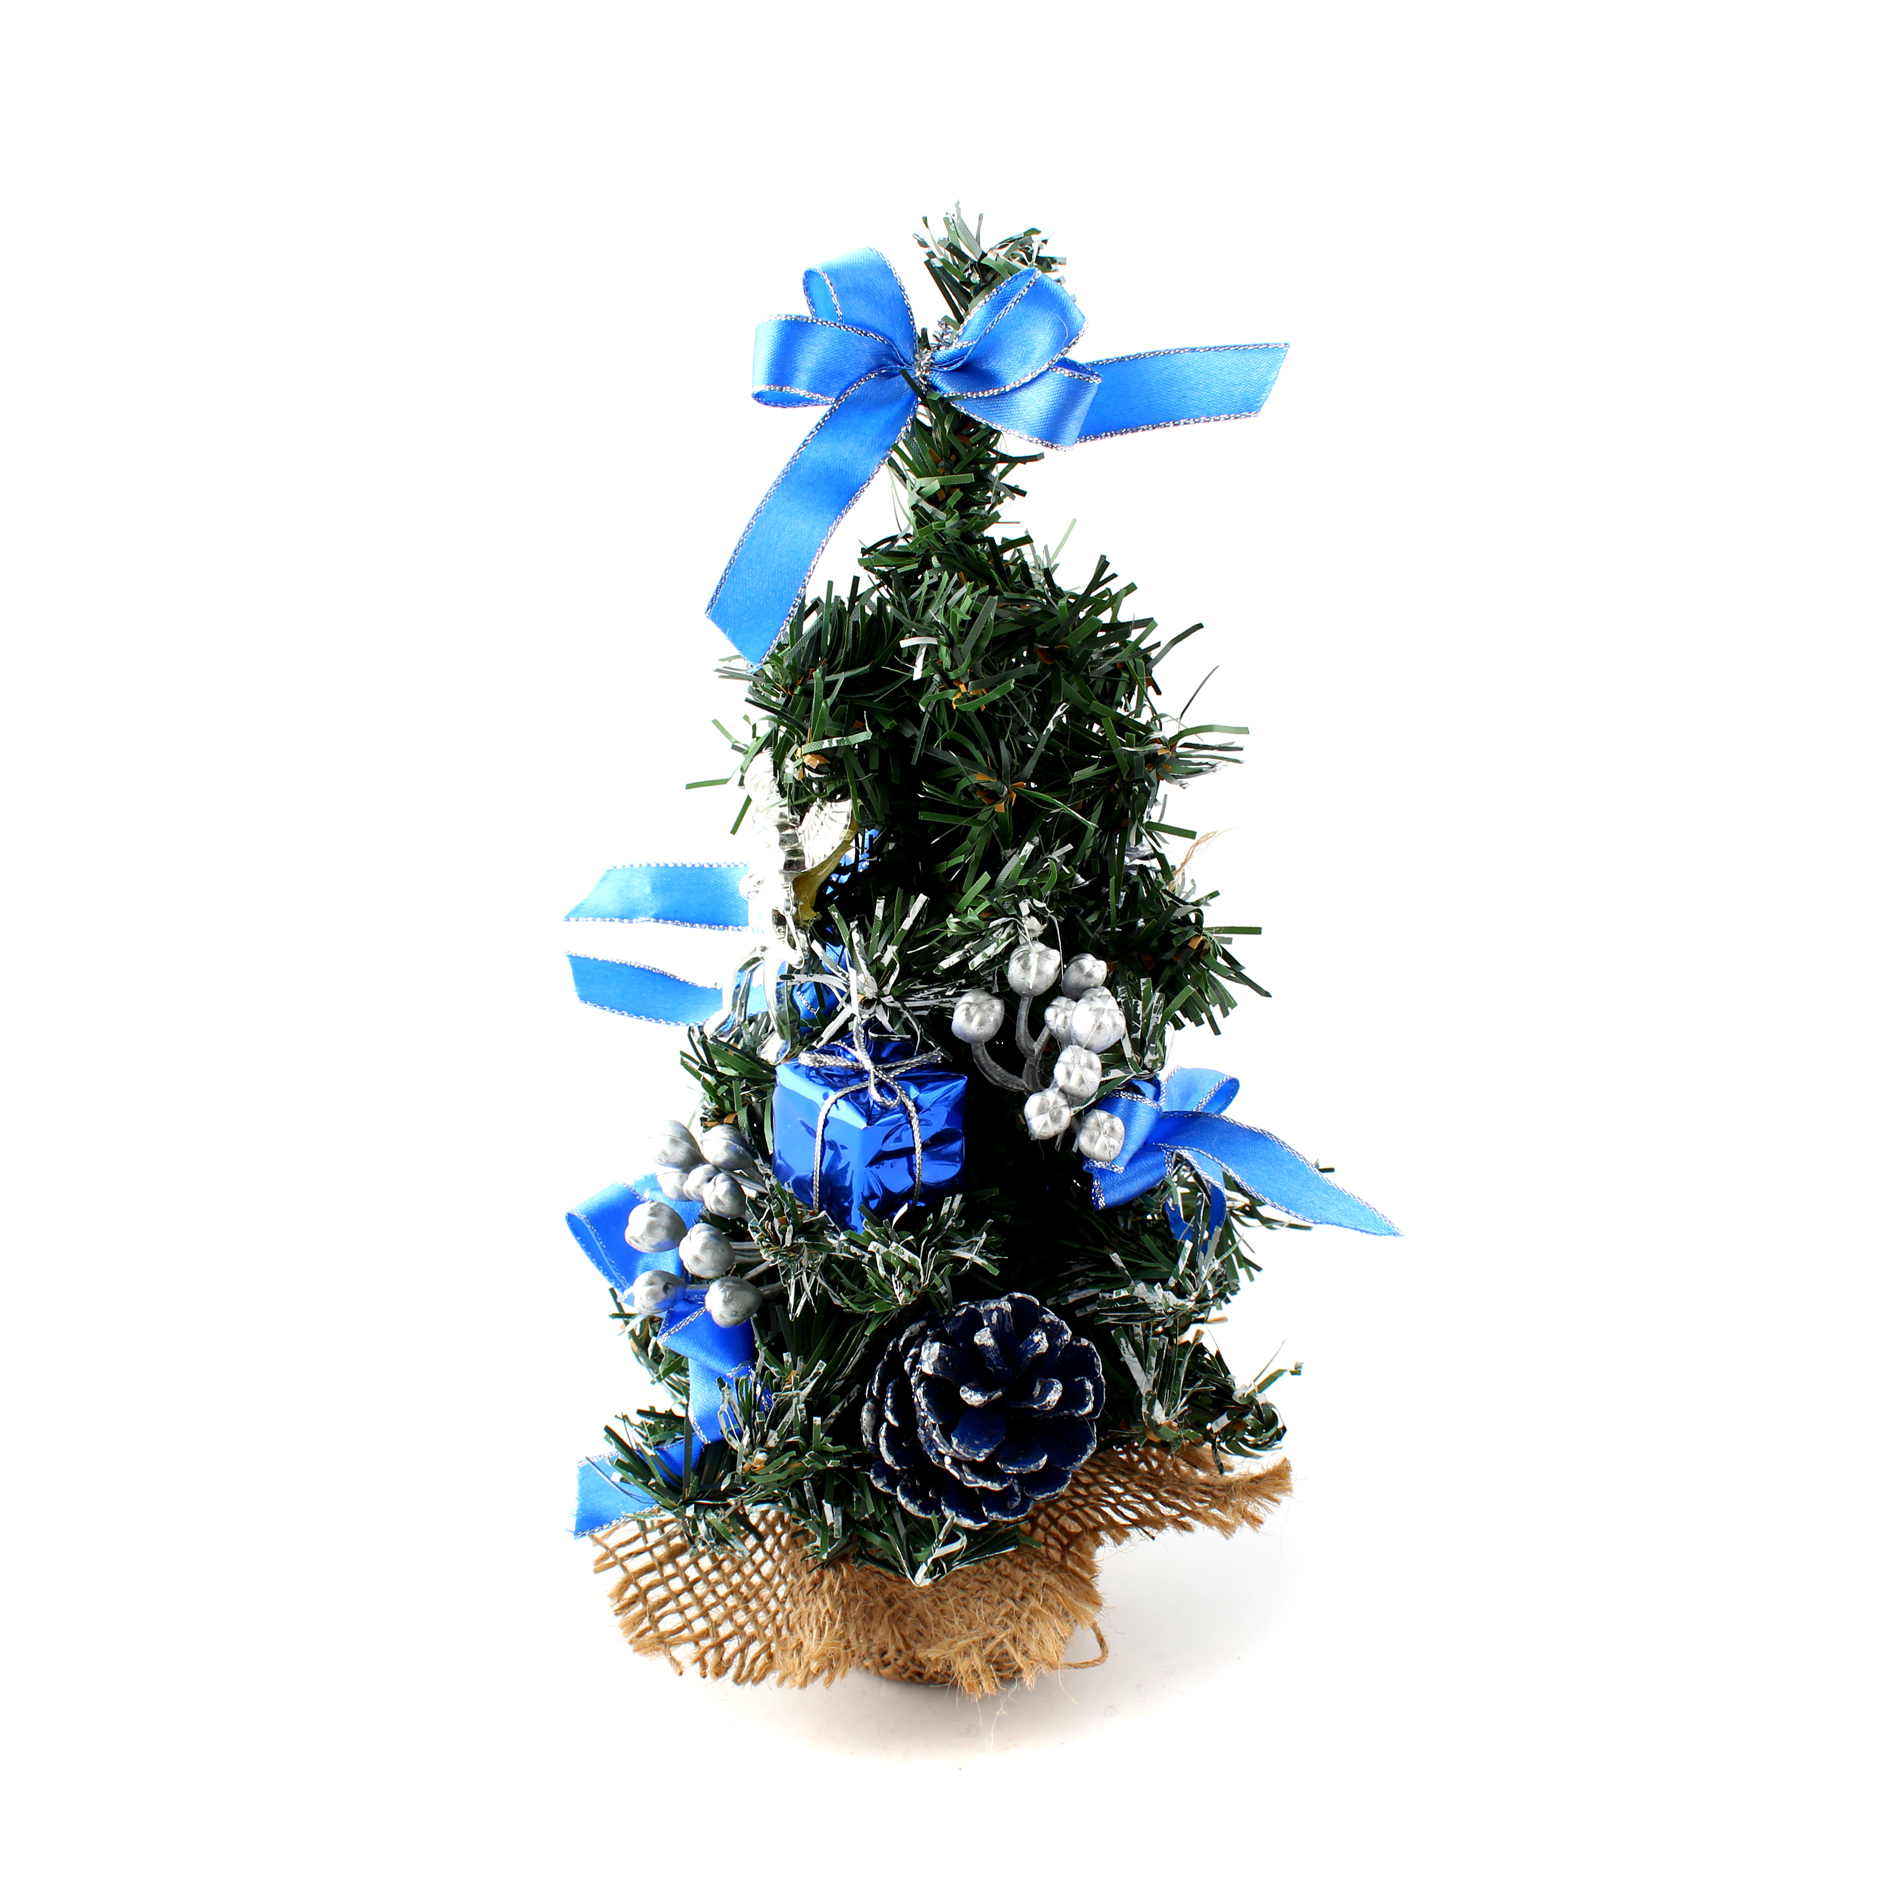 "10"" Mini Home Office Bedroom Livingroom Desk Top Artifical Christmas Tree with Pinecone Bows Gifts Ornaments Decorations"